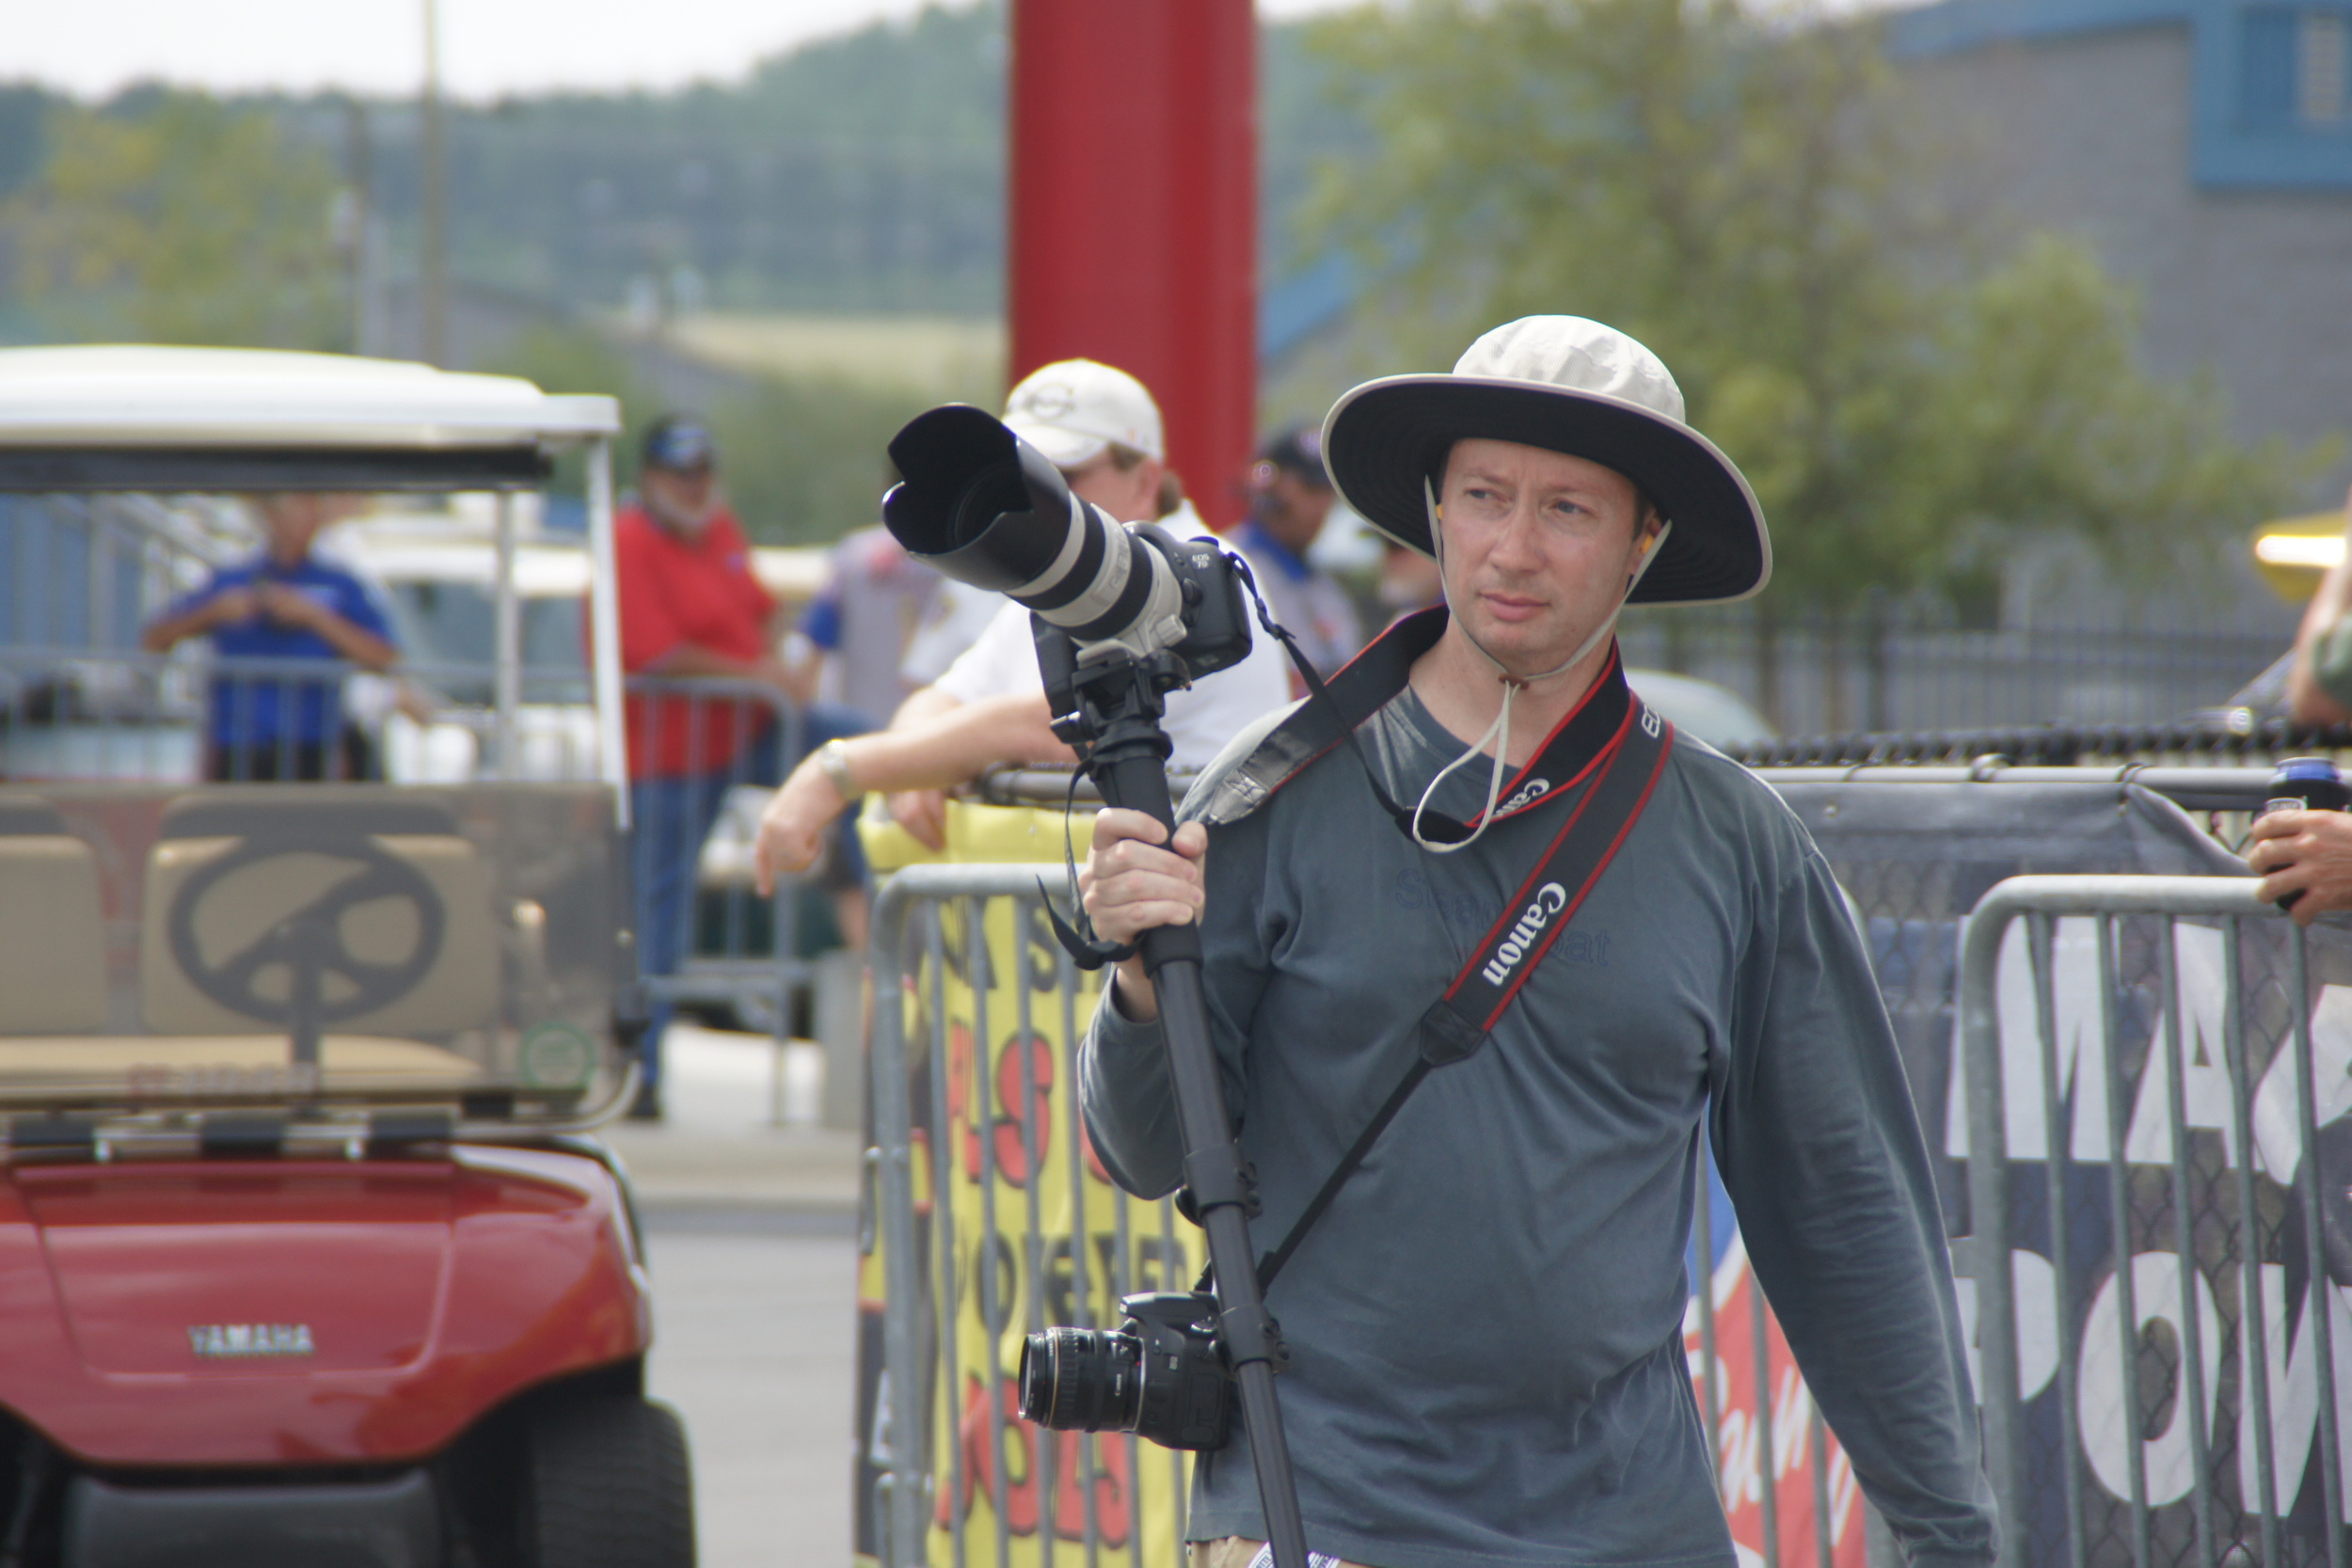 Shooting an NHRA Event